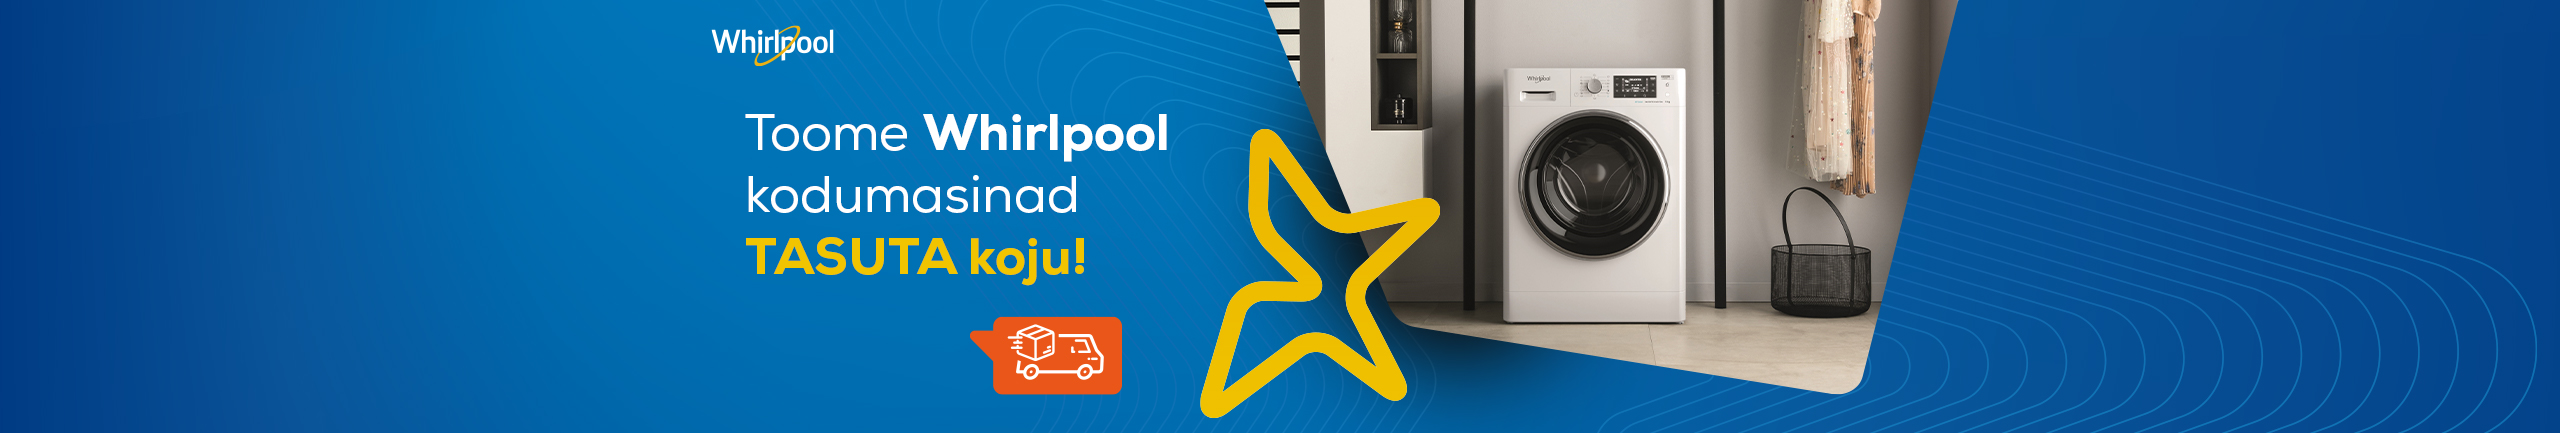 Free delivery for Whirlpool home appliances